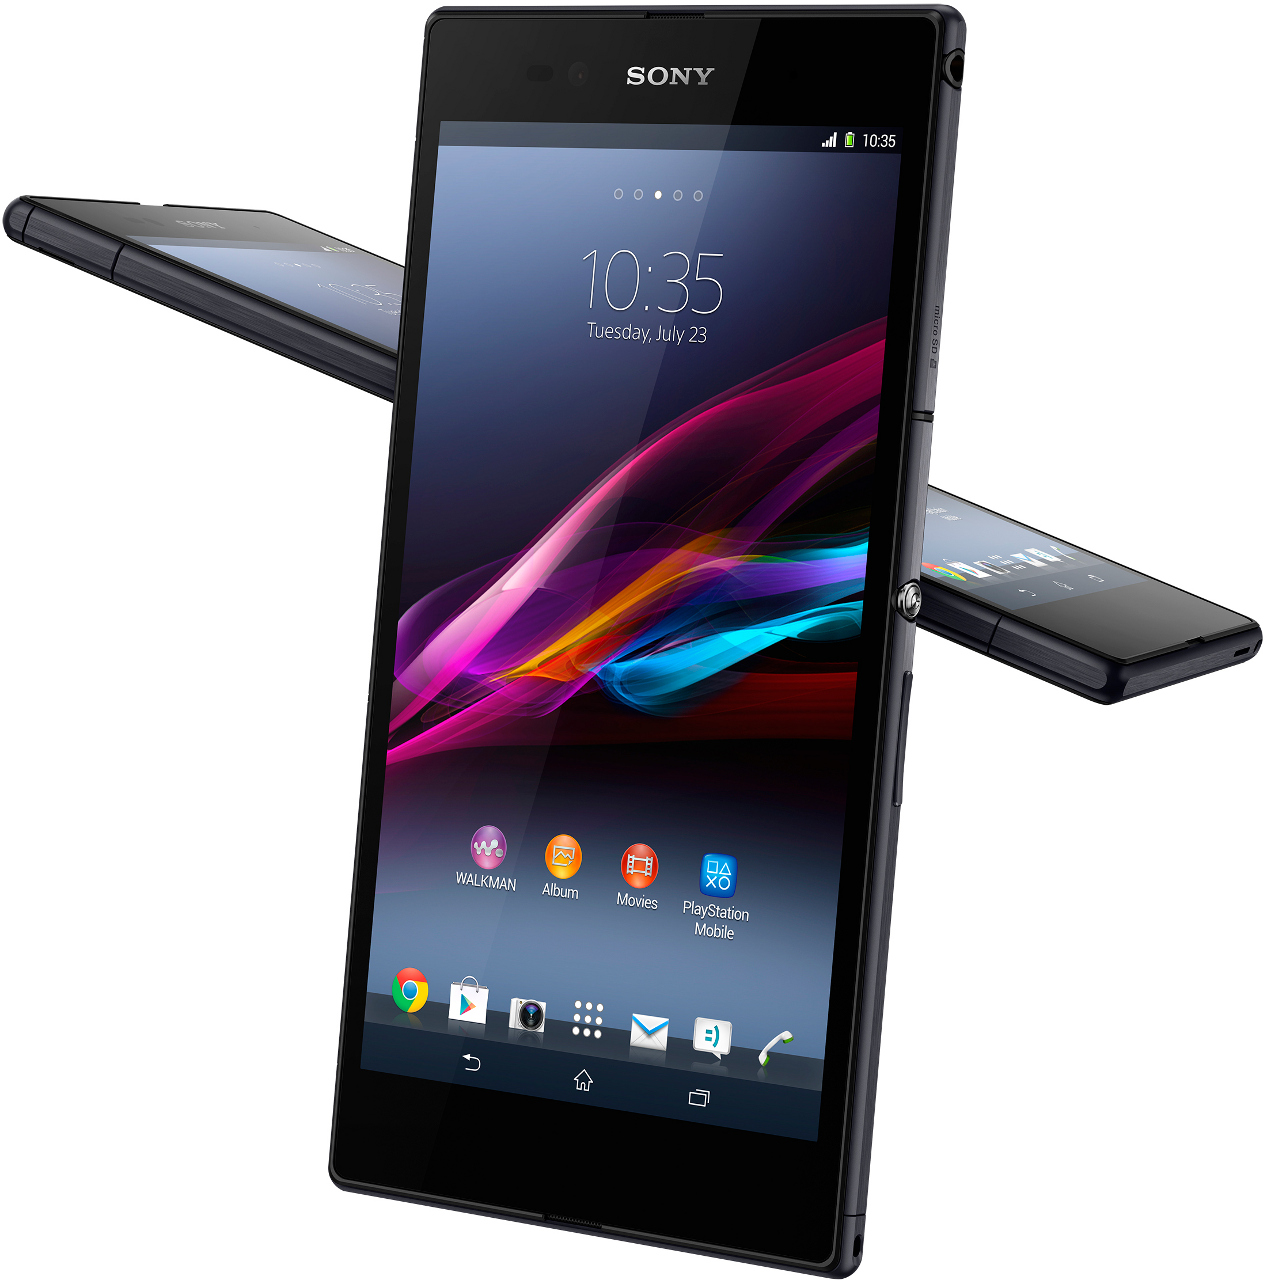 brand new 6539b 55baf Sony Xperia Z Ultra - Waterproof with Specs to Dominate the Phablet ...